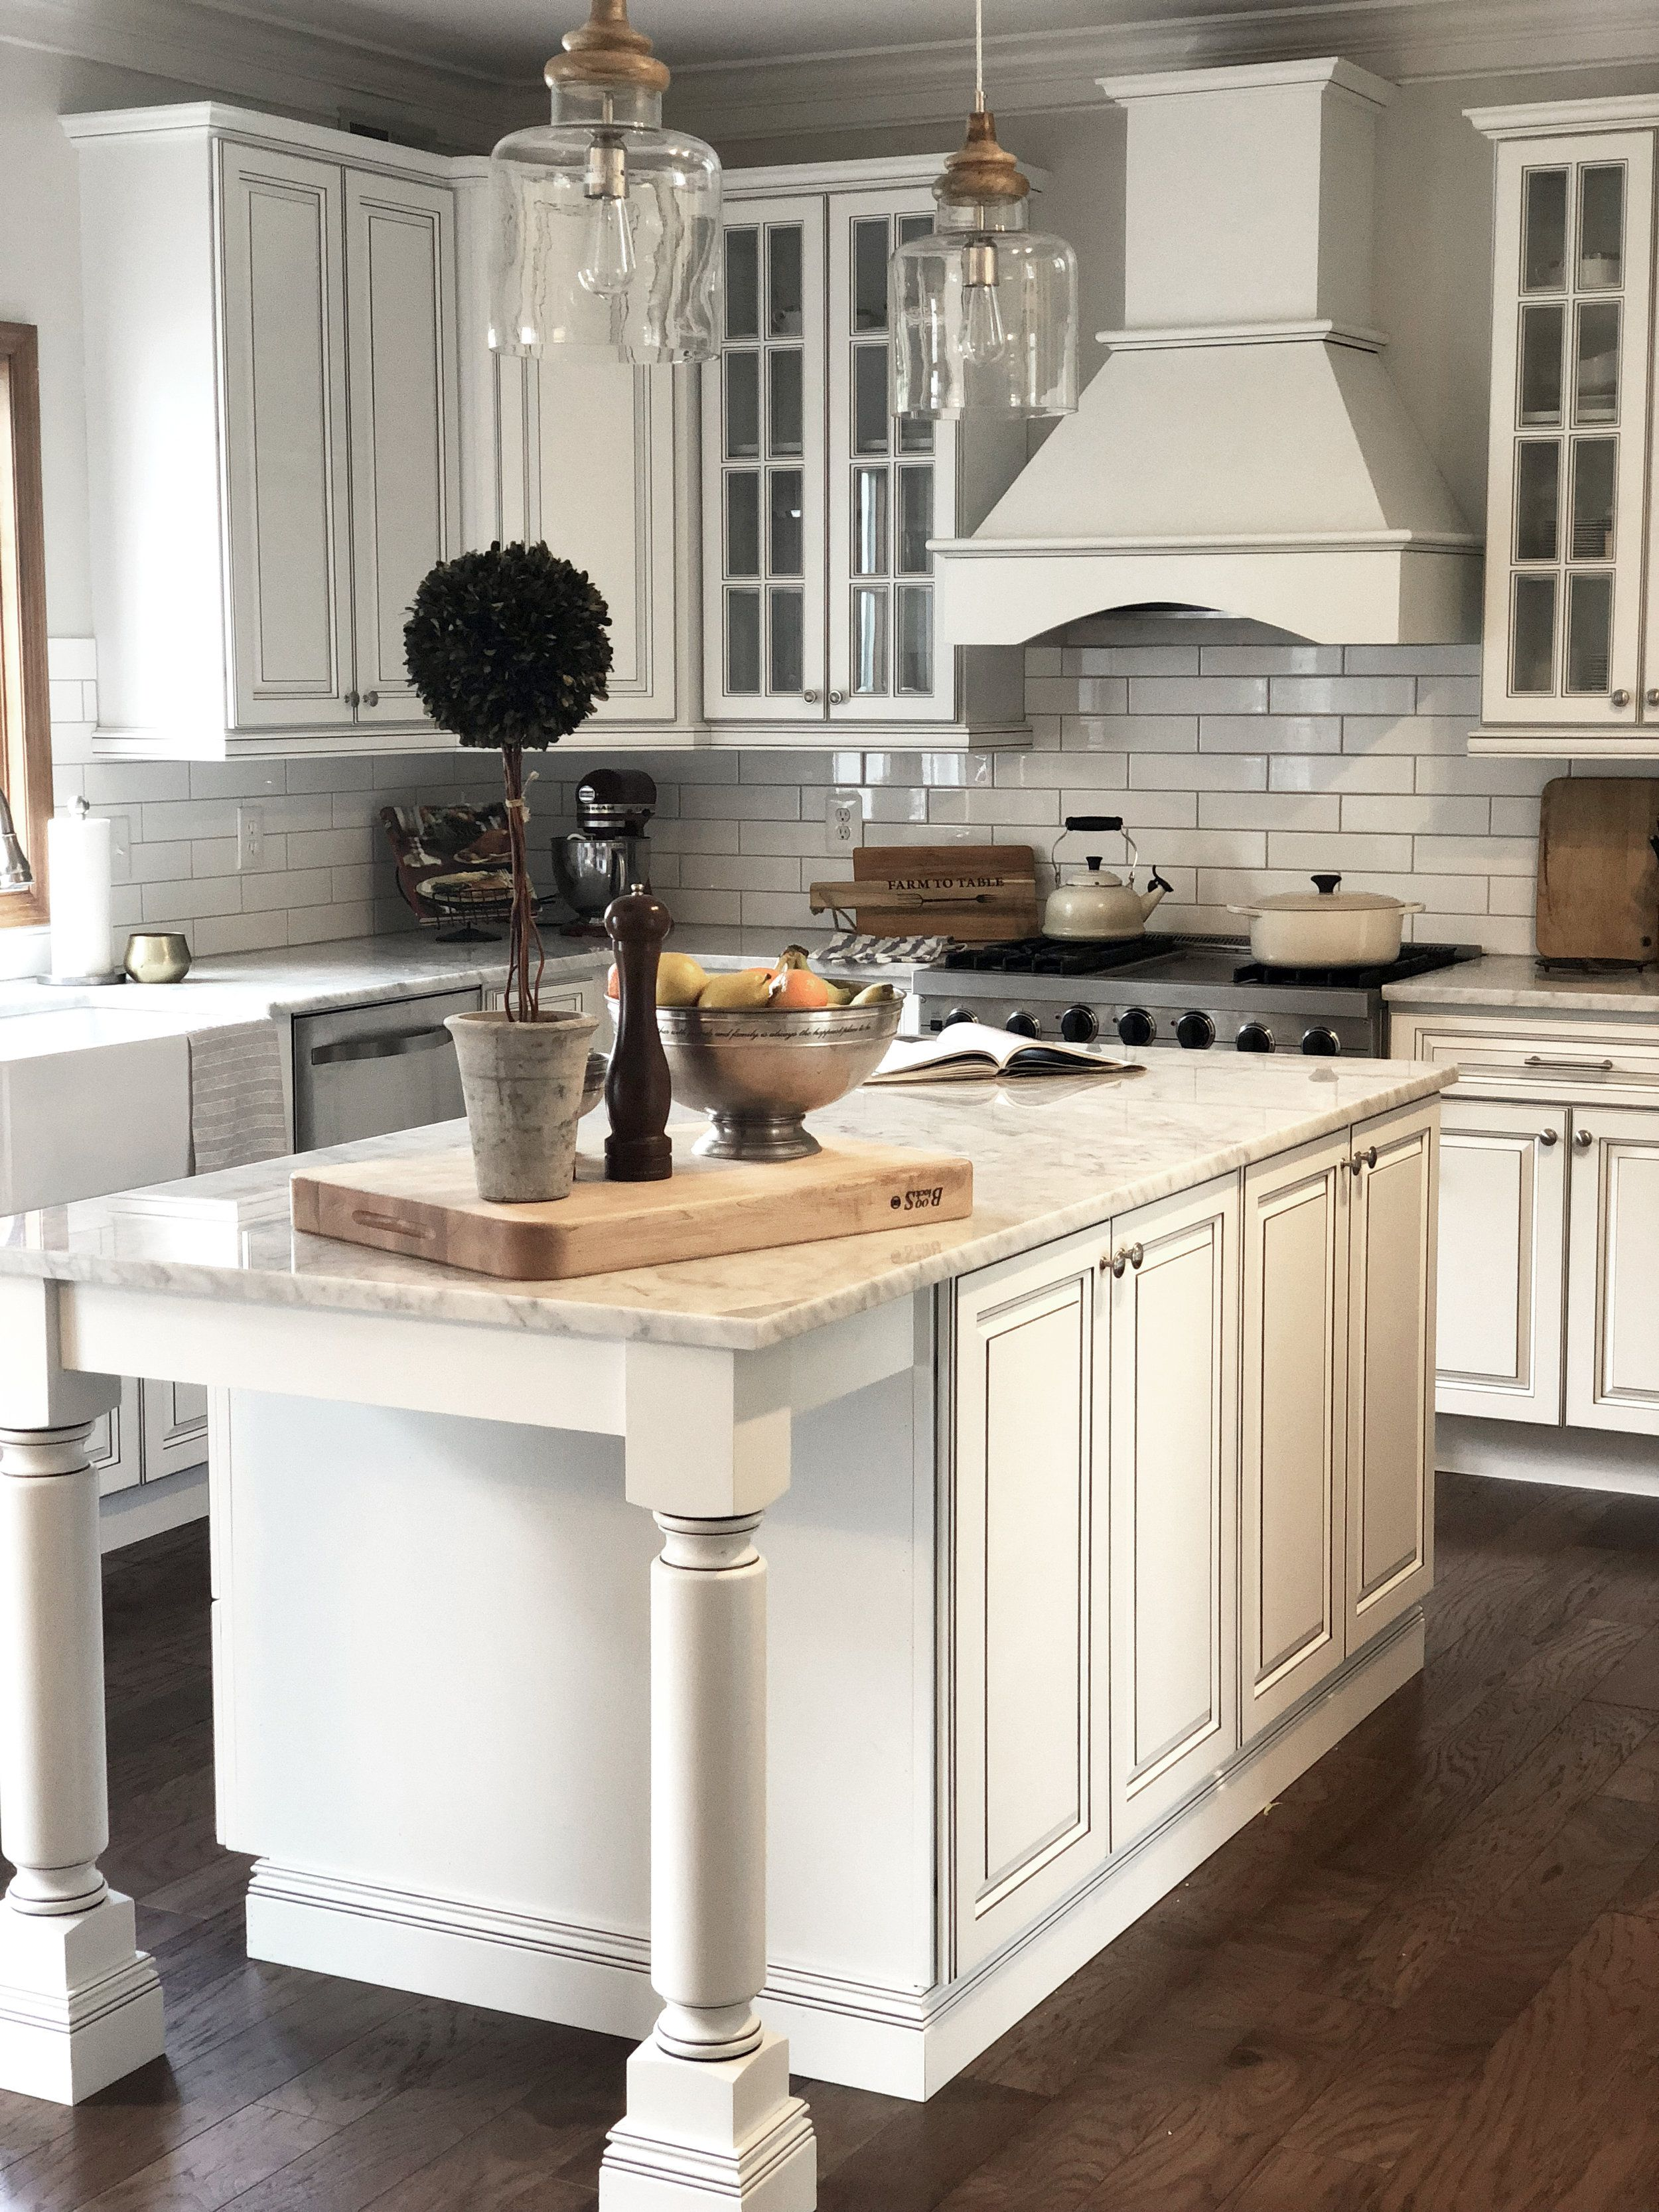 Stunning White Farmhouse Kitchen Island Complete With Glass Cabinets And Carrara Marble Countertops Major Kitchen Marble Kitchen Design Marble Kitchen Island